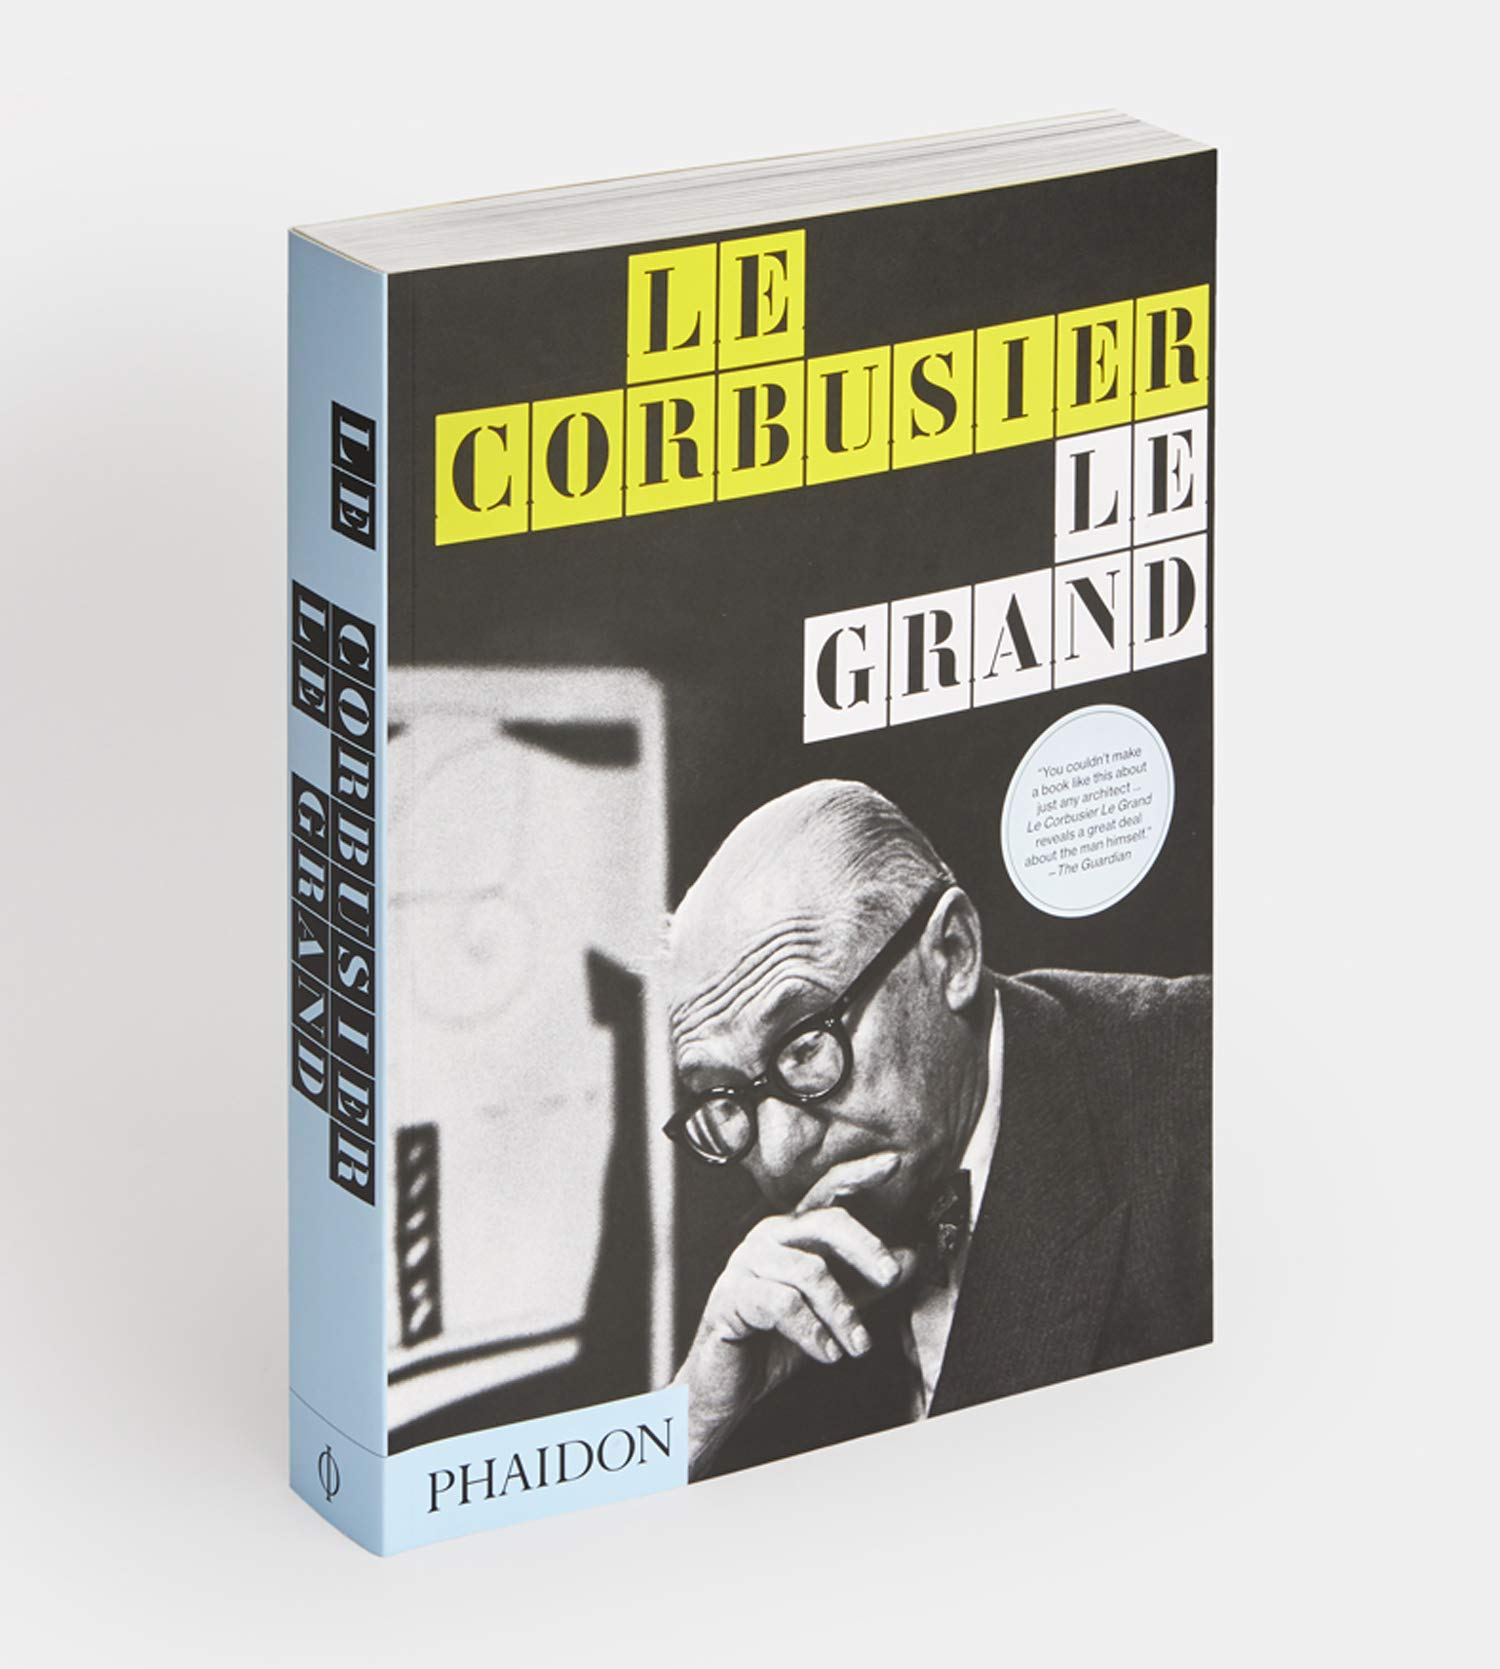 Thumbnail for A Big Book About Le Corbusier